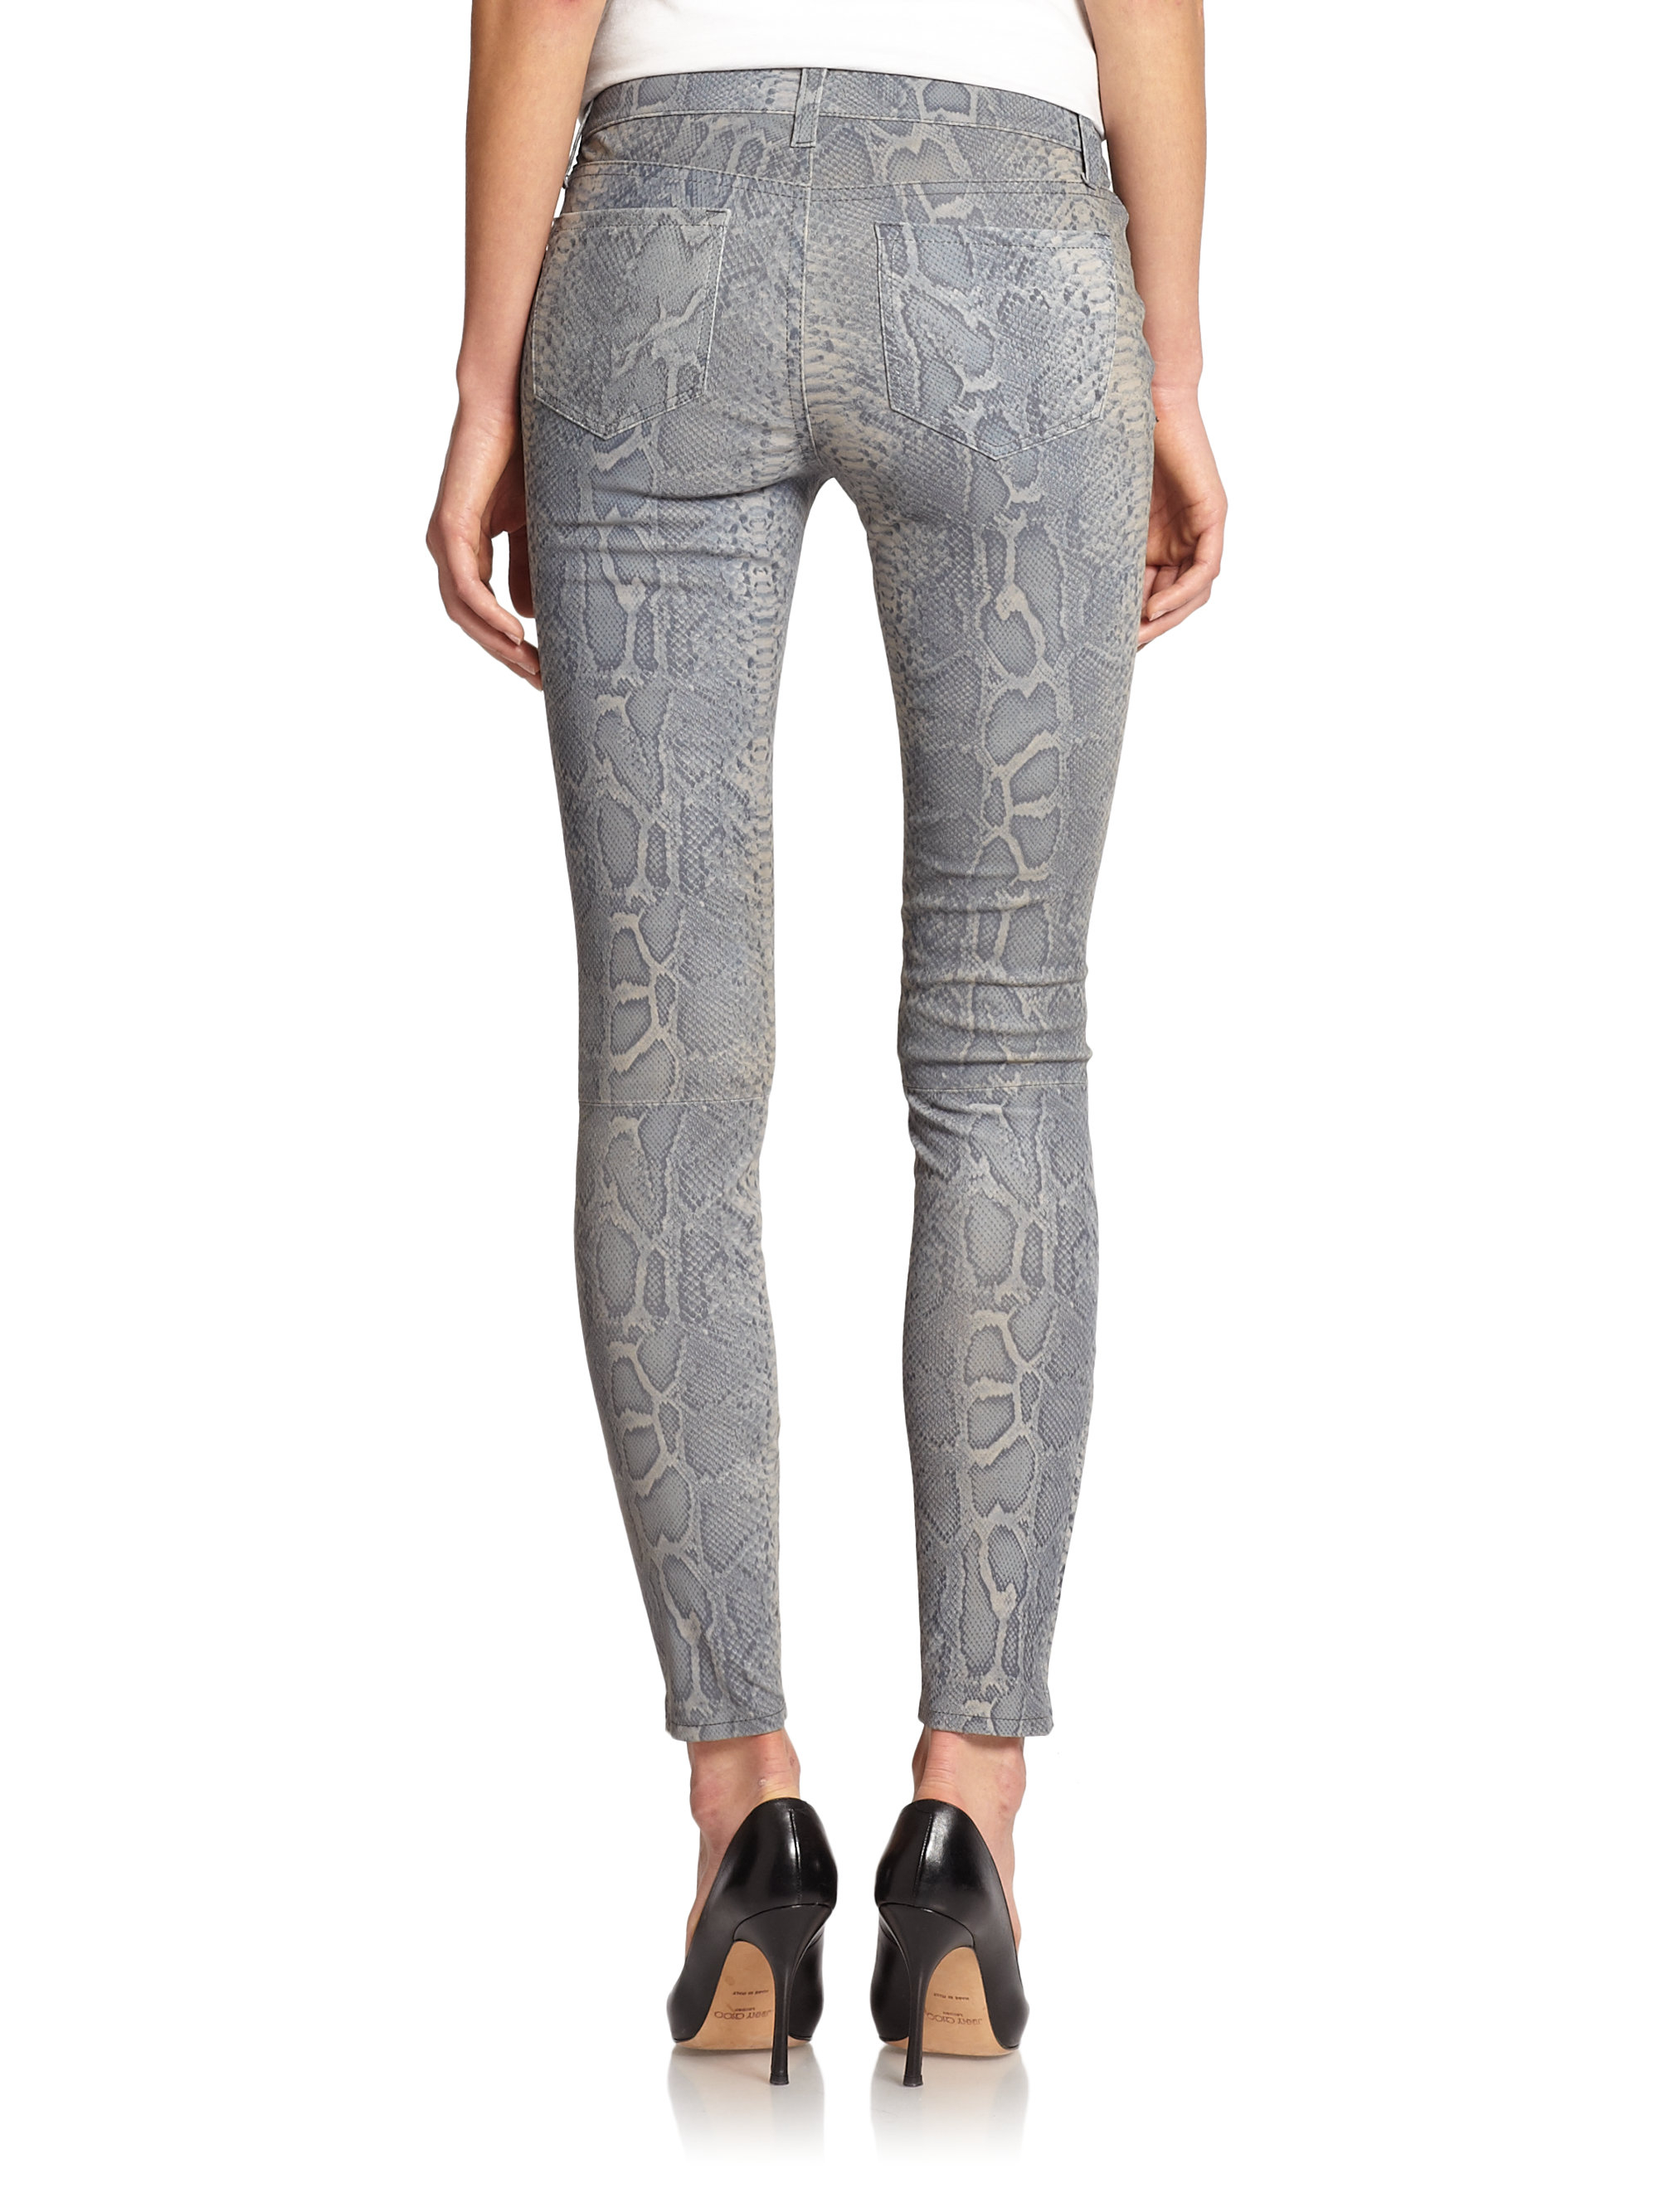 bc8e020c56d3 Lyst - J Brand Python Print Leather Skinny Jeans in Gray